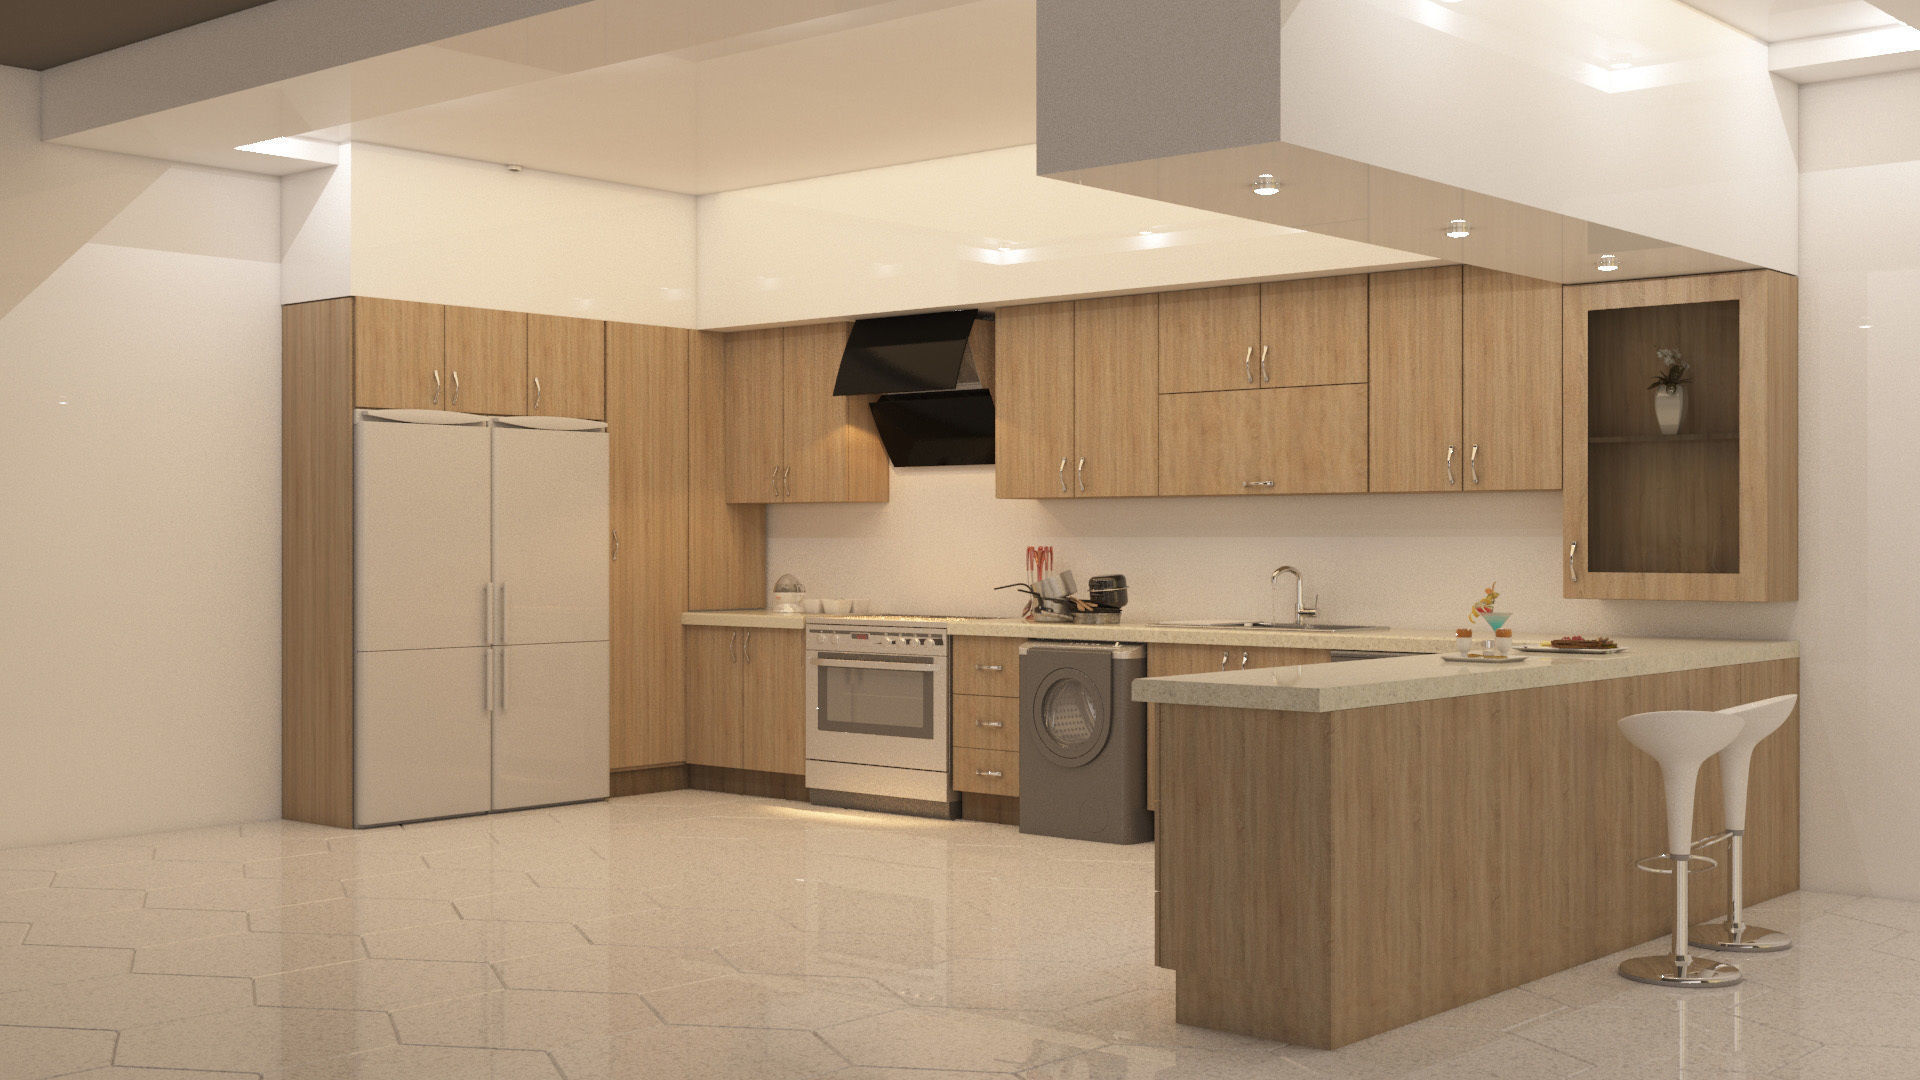 Kitchen Design 3d Model Kitchen Design 3d Asset Cgtrader